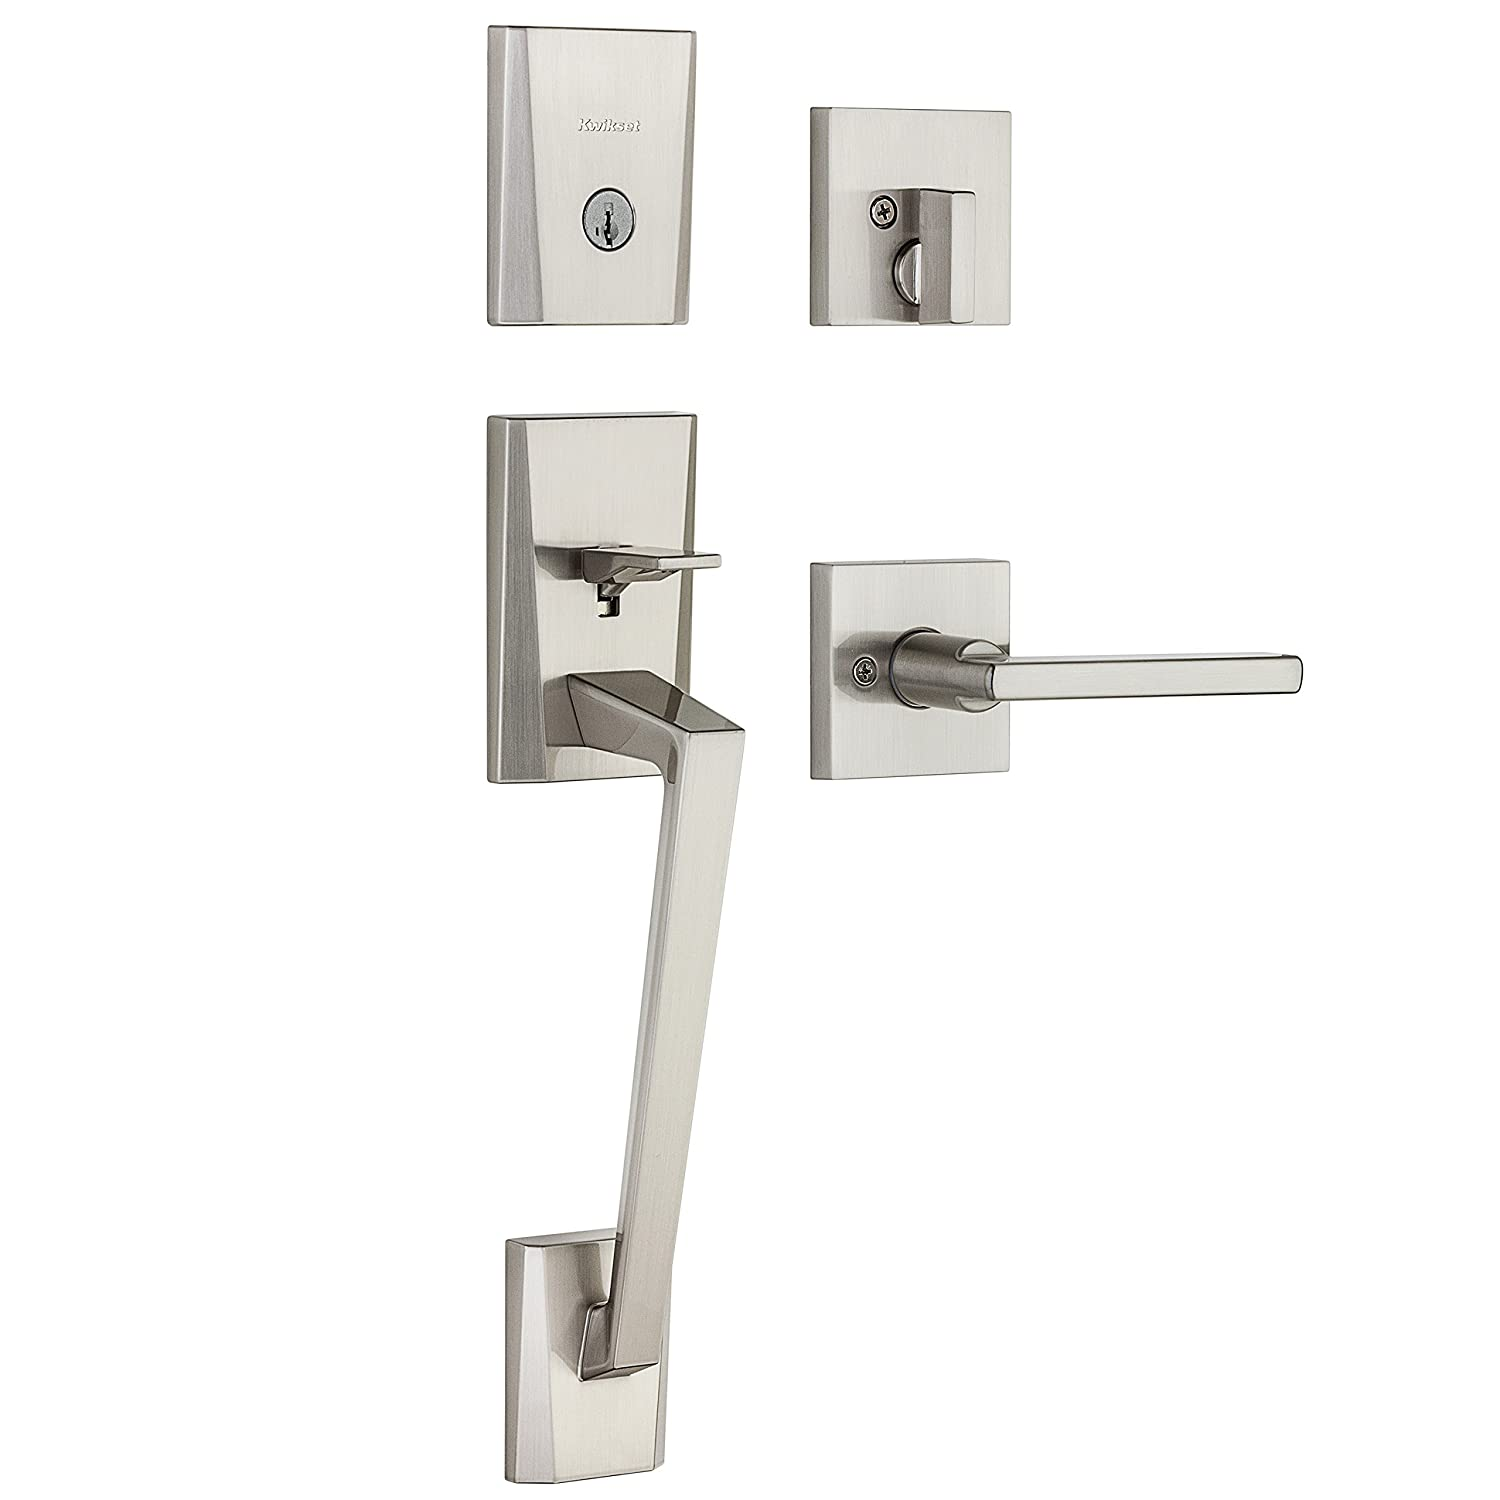 Kwikset 98180-003 Camino Single Cylinder Low Profile Handleset with Halifax Lever Featuring Smartkey In Satin Nickel